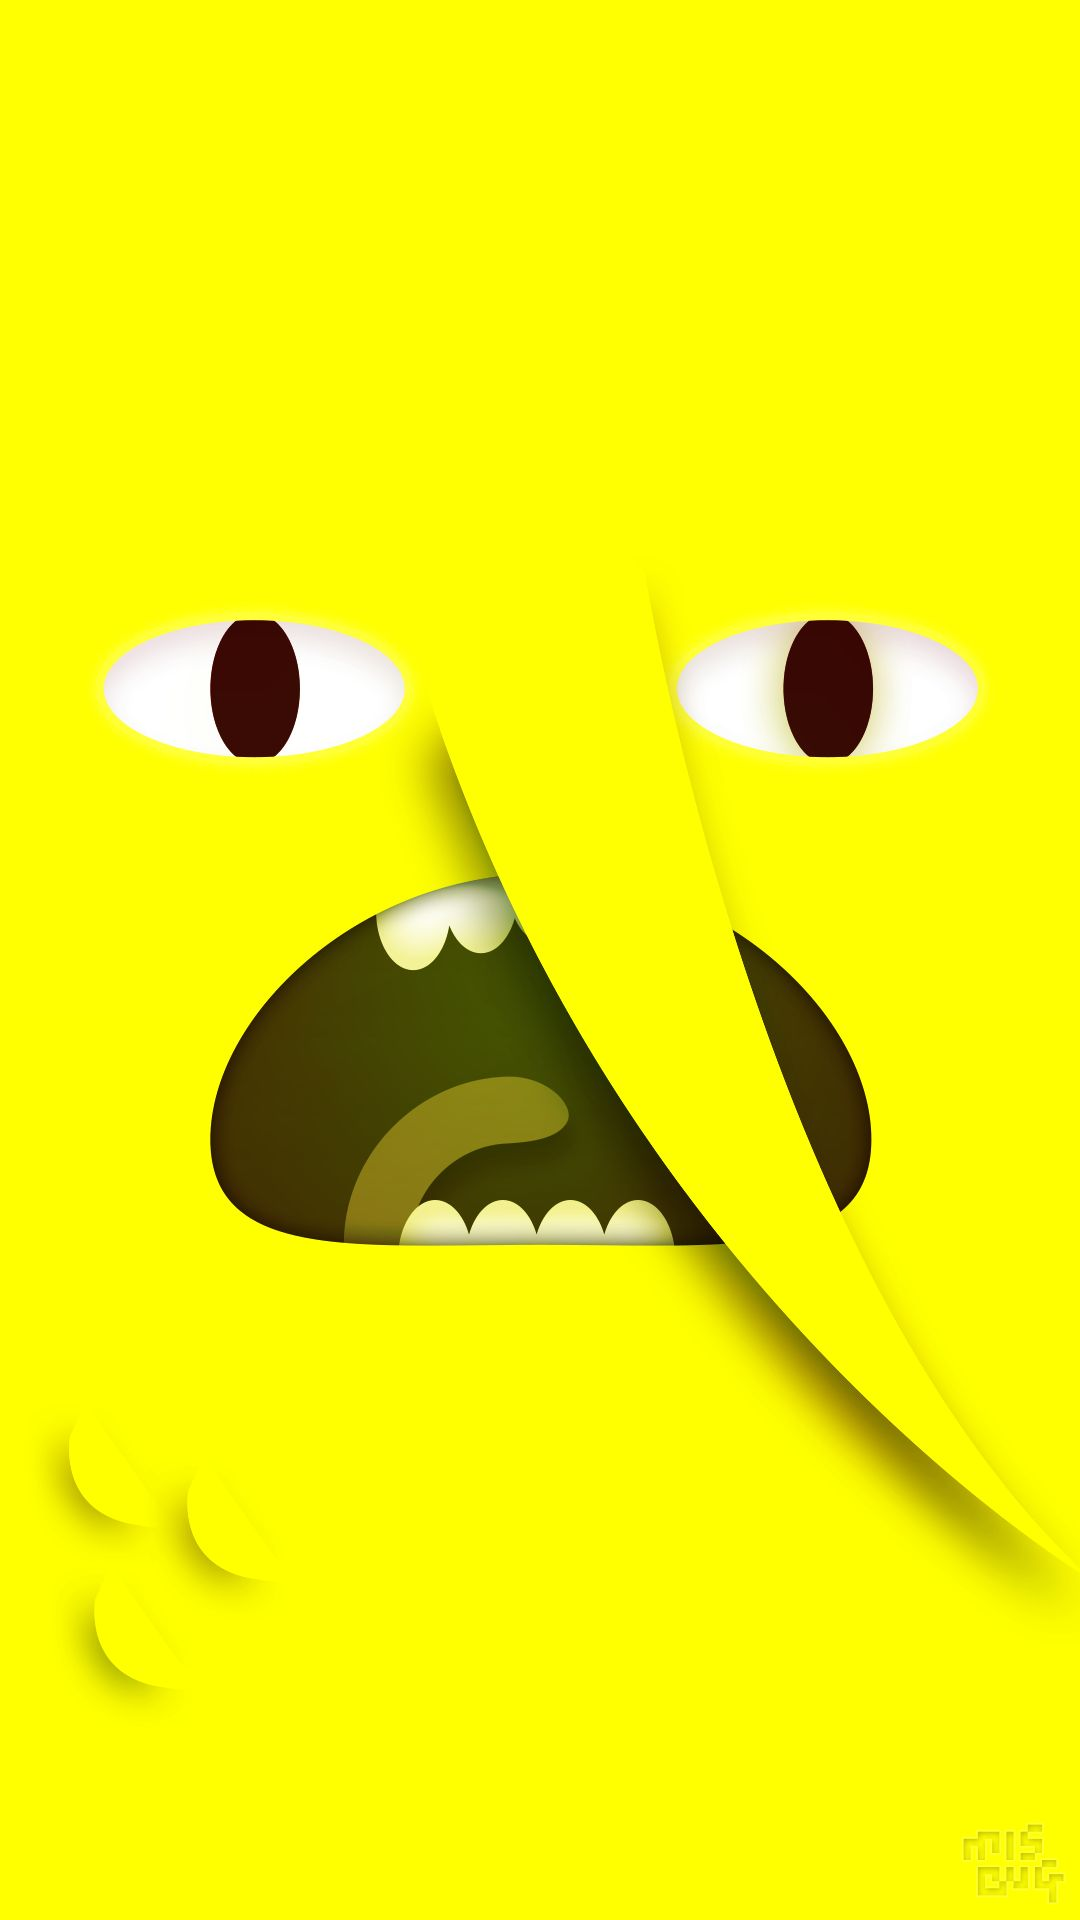 The Lemon From Adventure Time